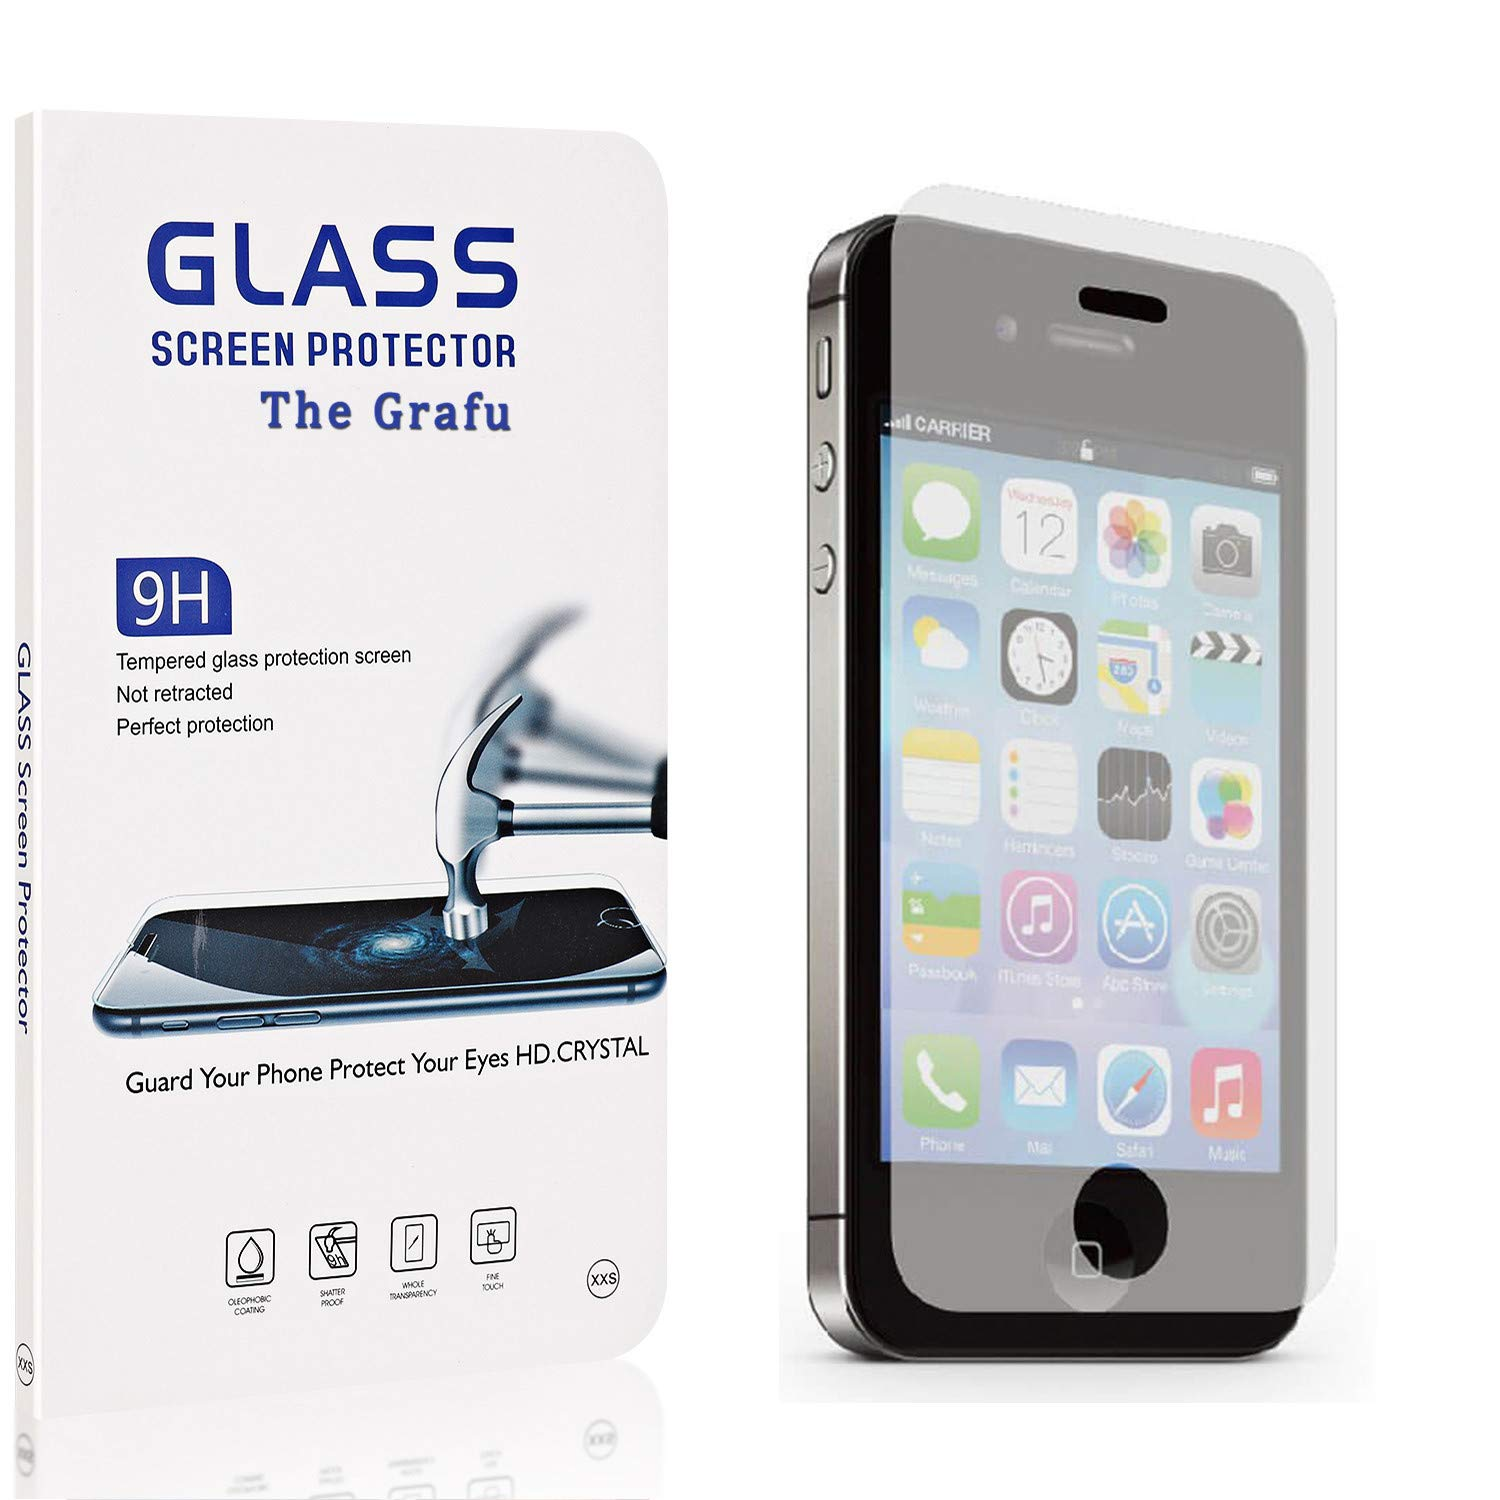 Anti Scratch Tempered Glass Screen Protector for iPhone 8 // iPhone 7 Drop Fall Protection The Grafu Screen Protector for iPhone 8 // iPhone 7 9H Hardness 3 Pack